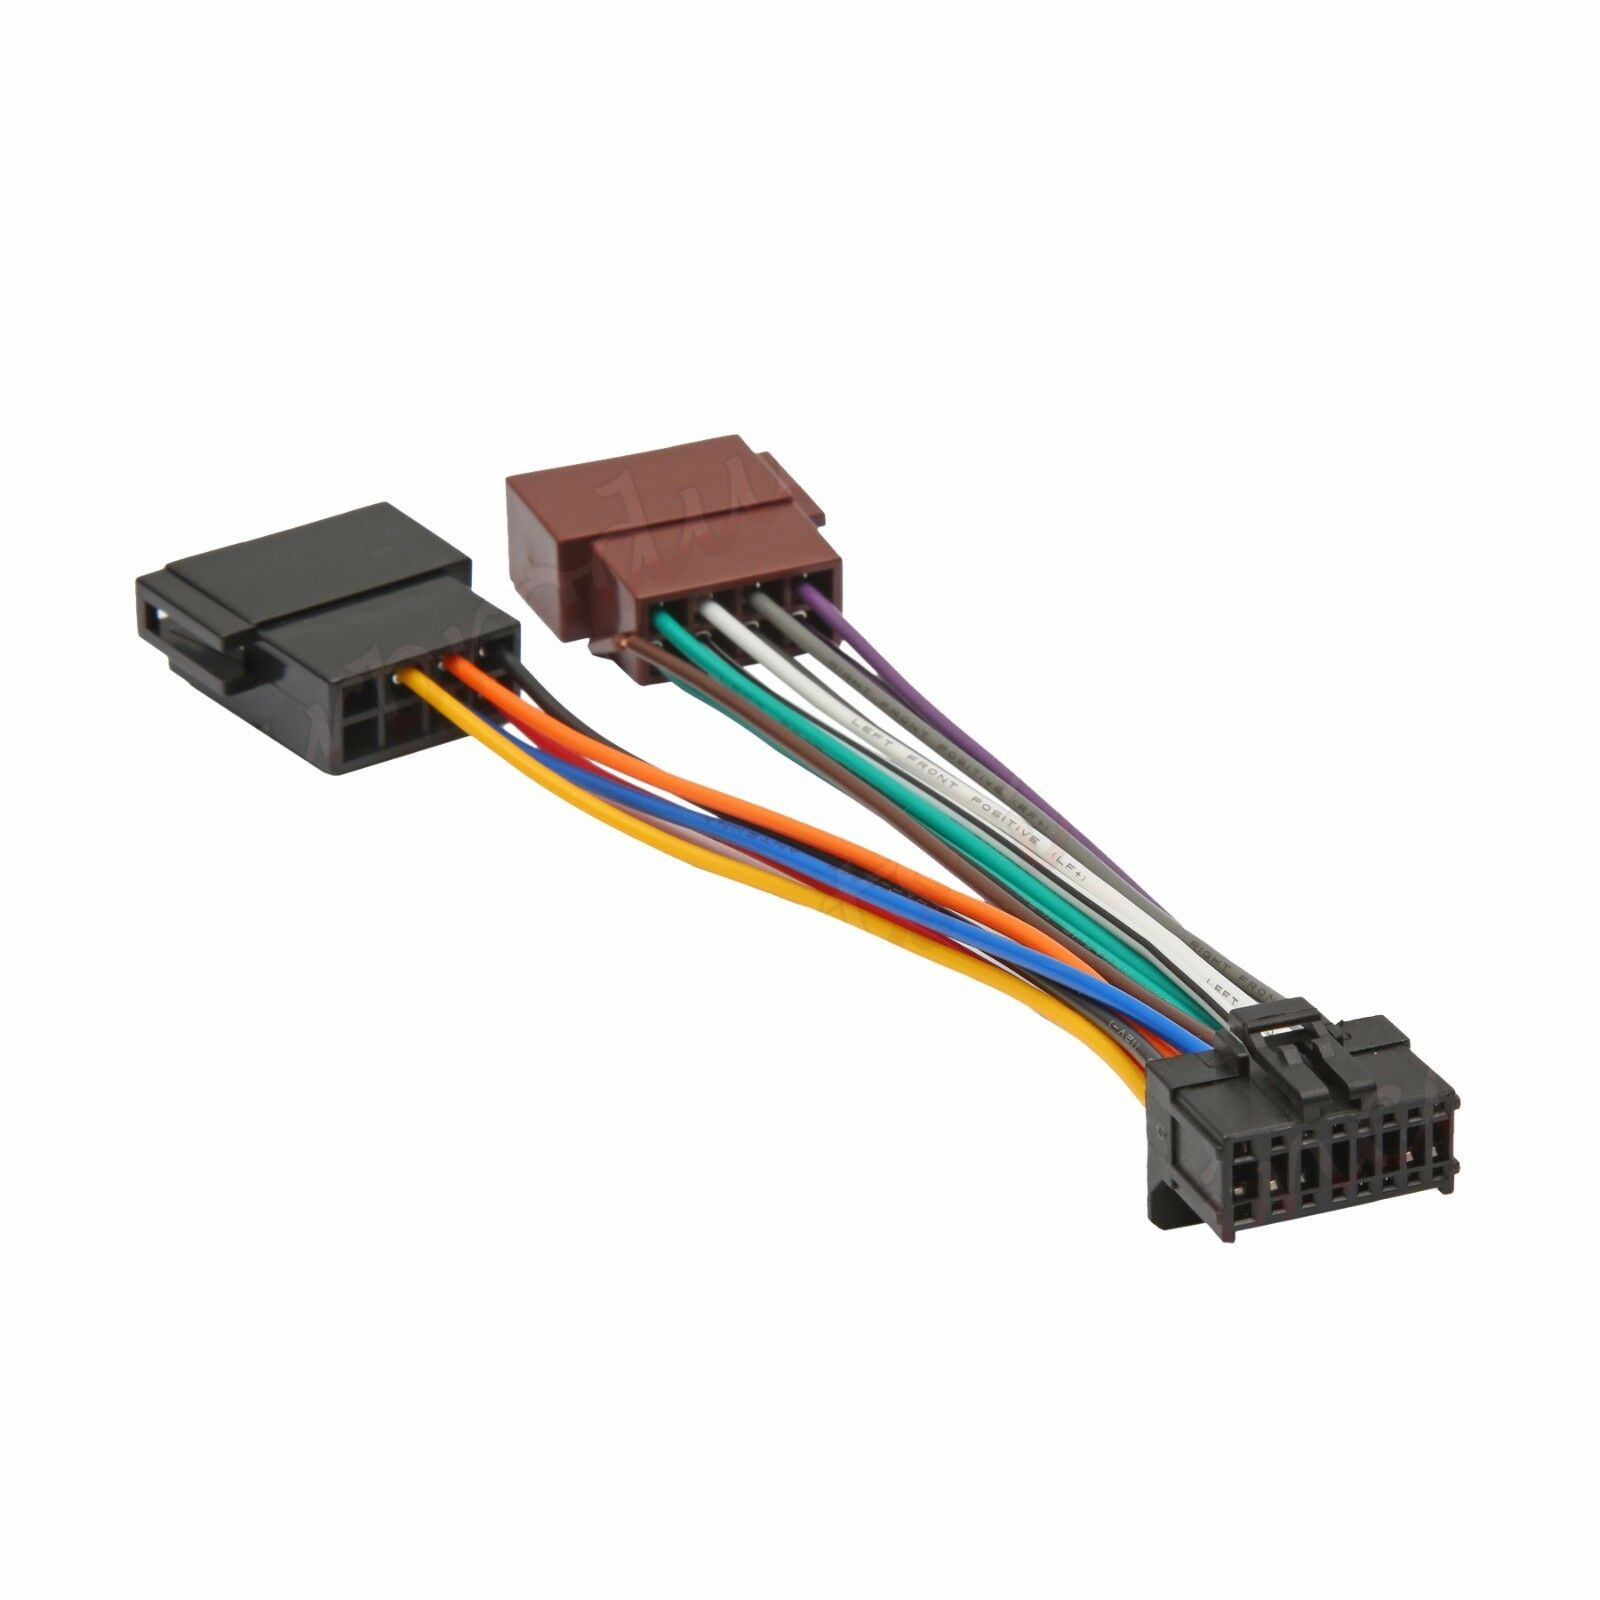 details about pioneer 16 pin iso wiring harness connector adaptor car stereo radio loom  wiring harness connector pins #14